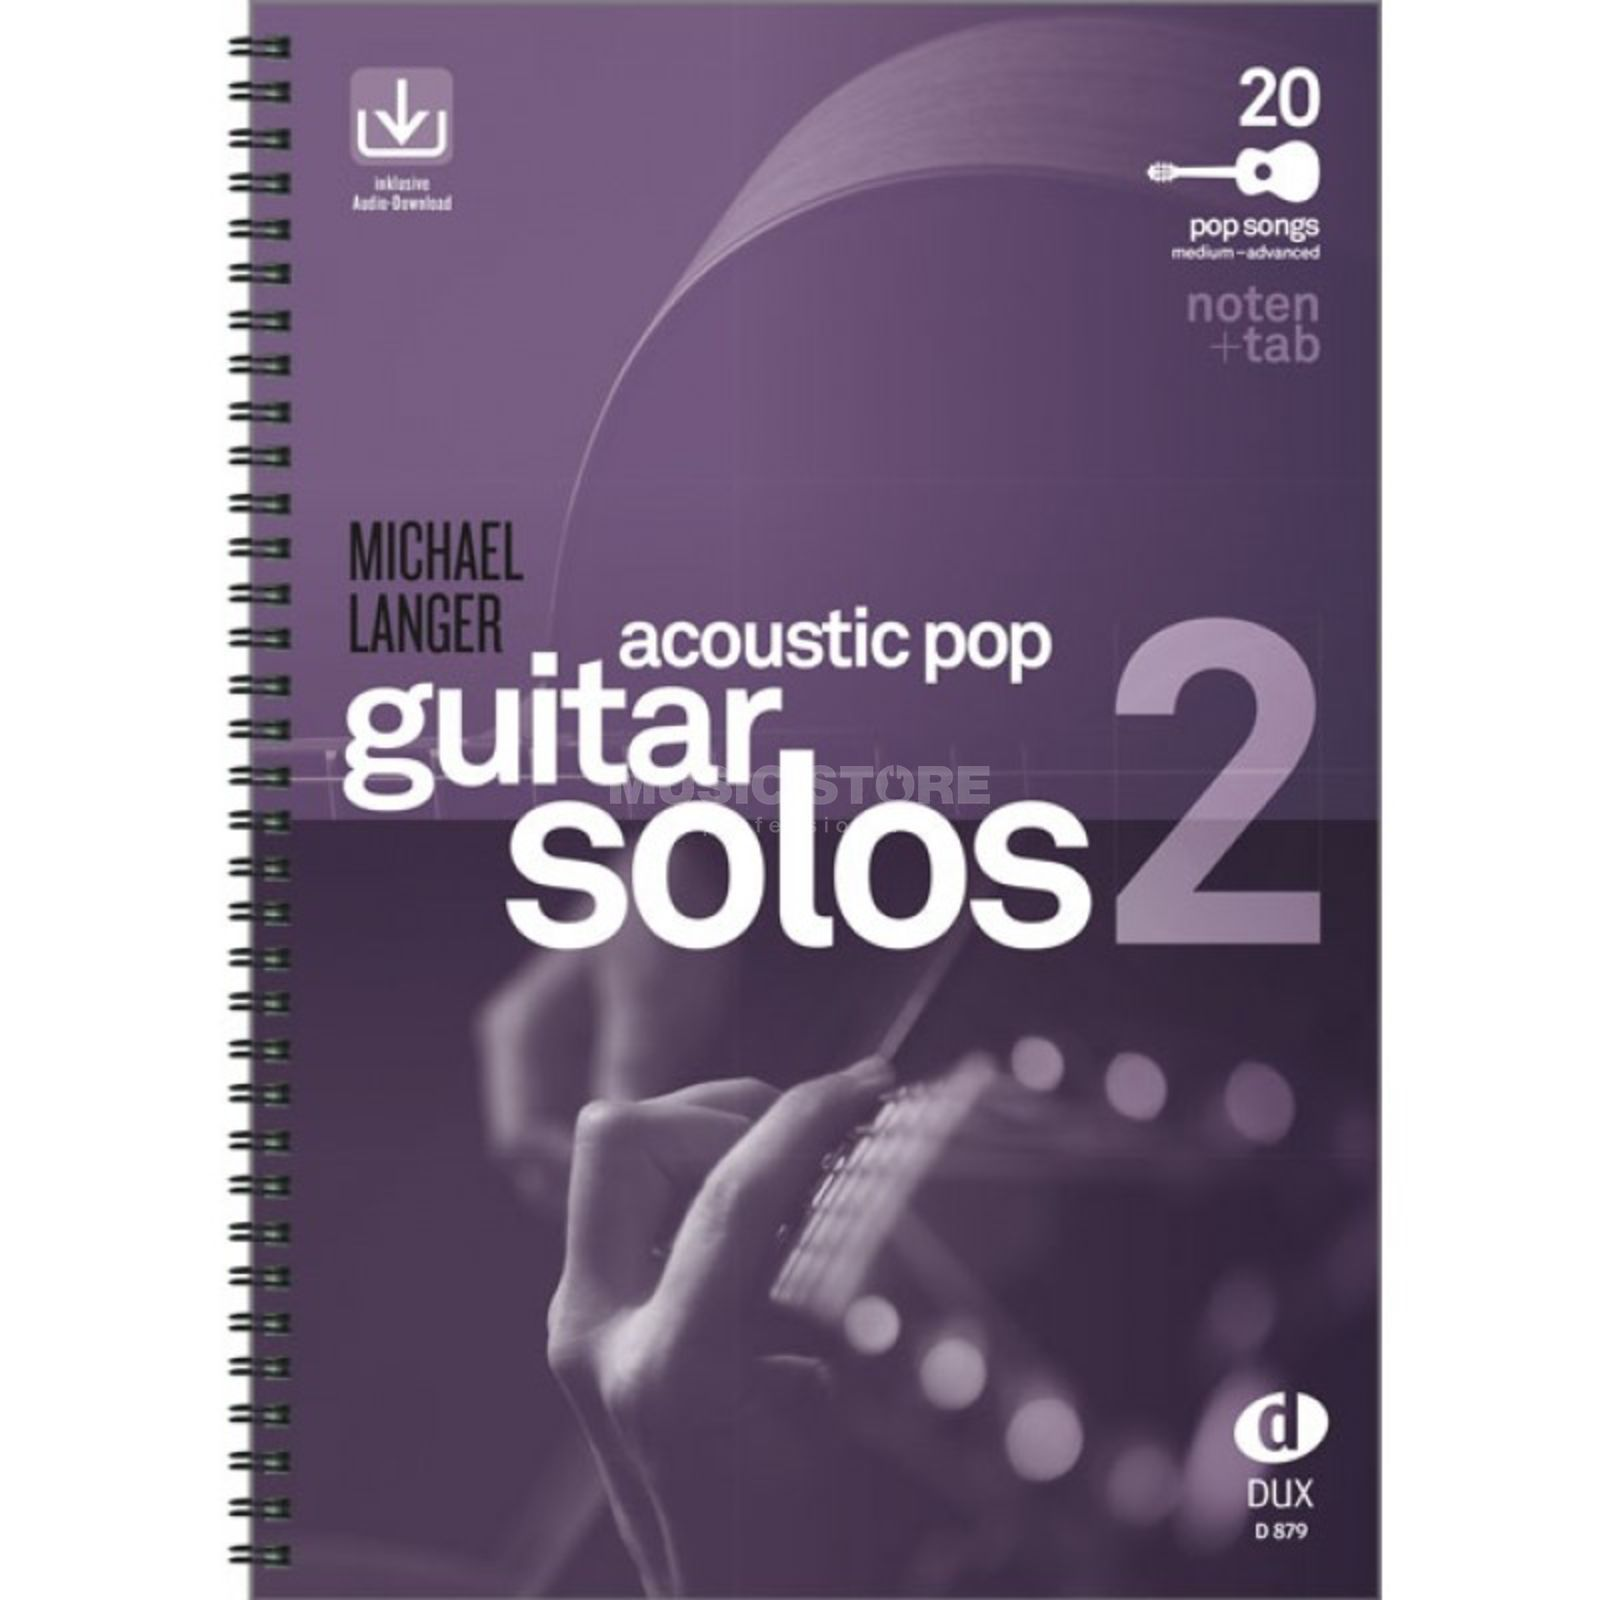 Edition Dux Acoustic Pop Guitar Solos 2  Produktbild